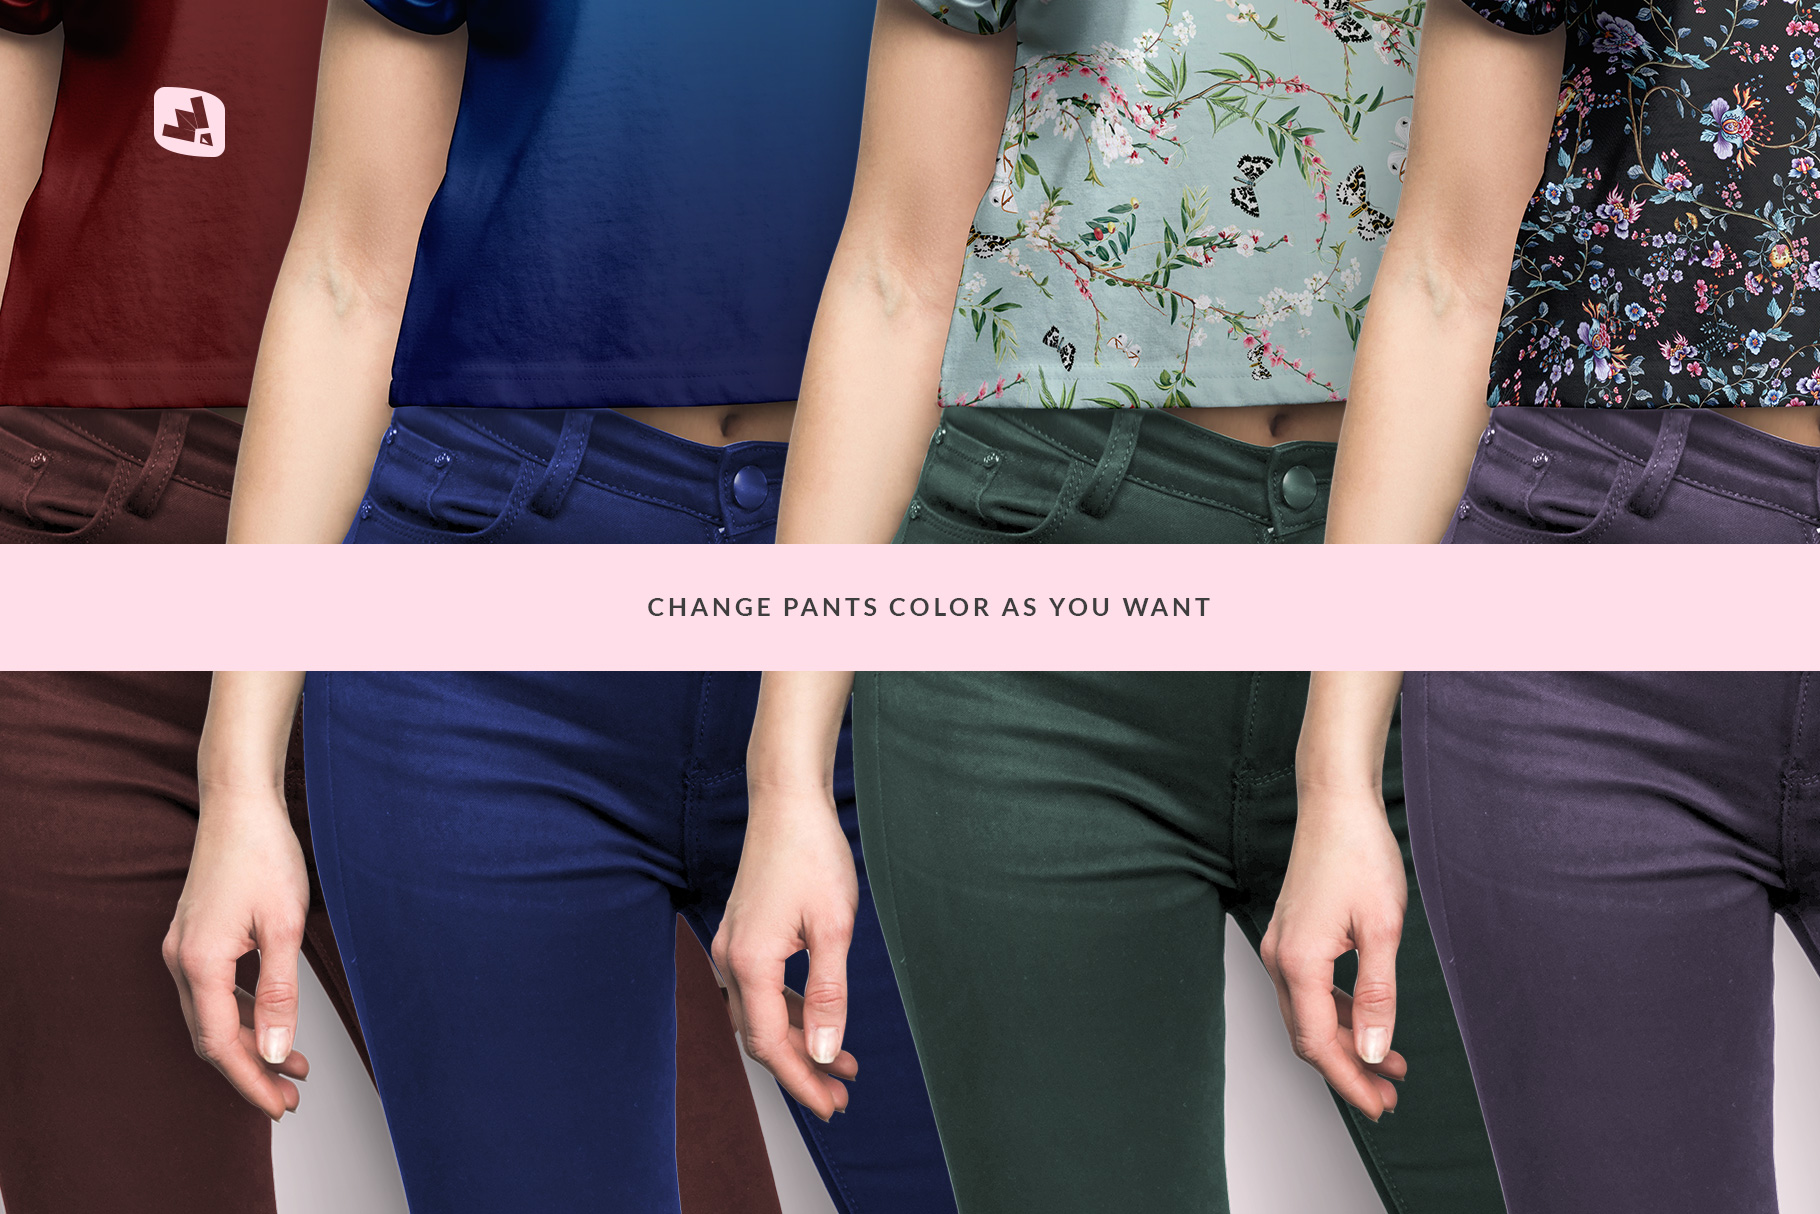 cusmoizable colors of the female crop top tshirt mockup